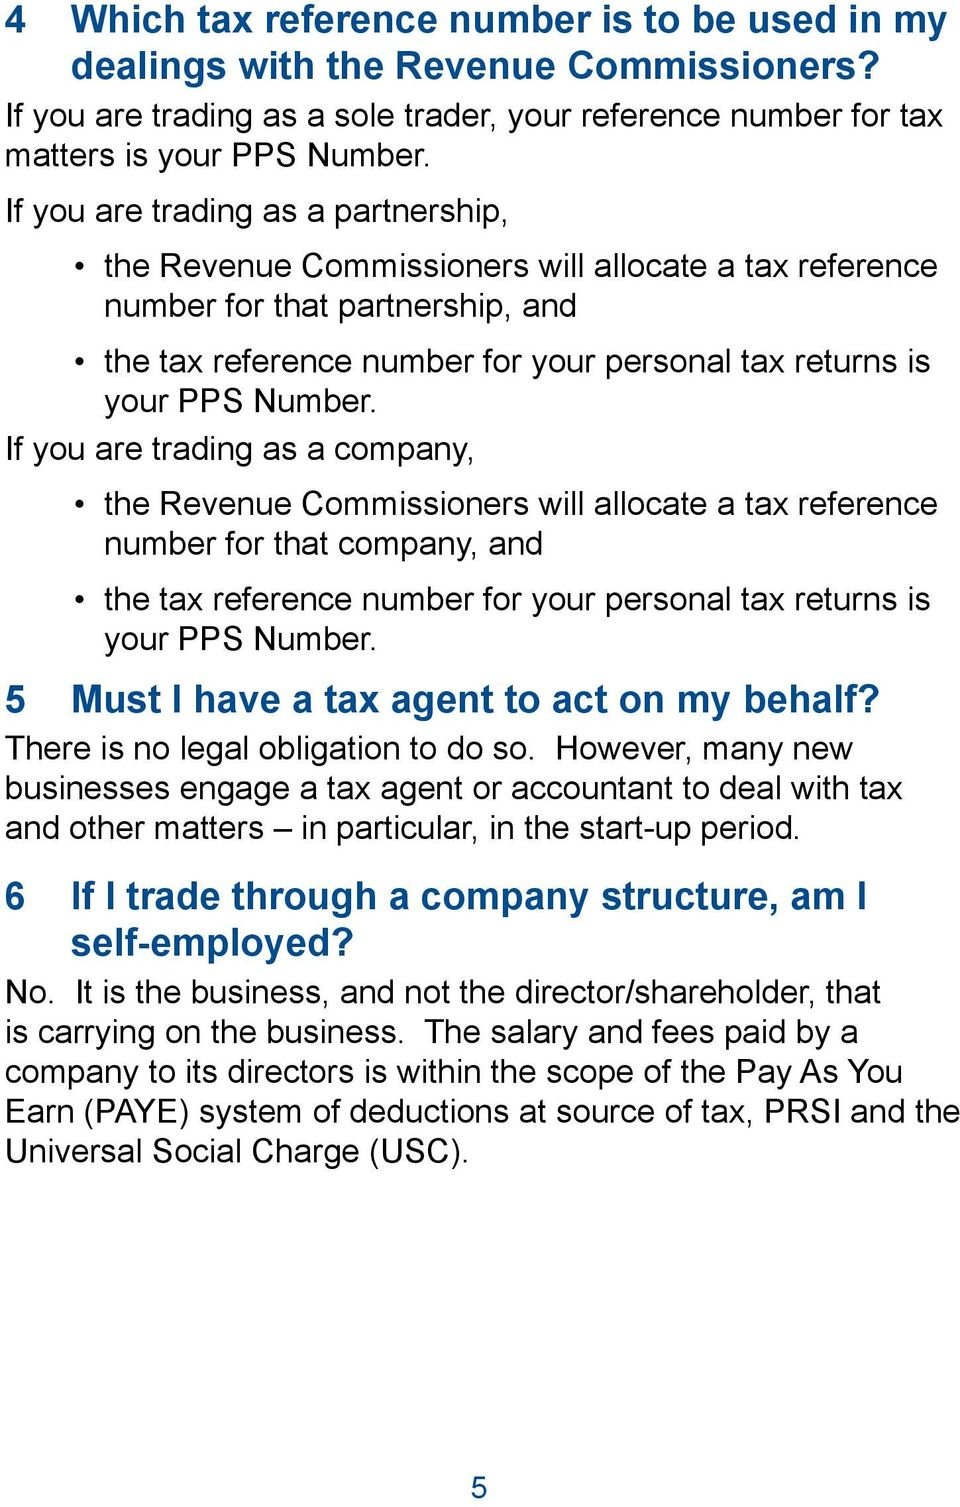 If you are trading as a company, the Revenue Commissioners will allocate a tax reference number for that company, and the tax reference number for your personal tax returns is your PPS Number.